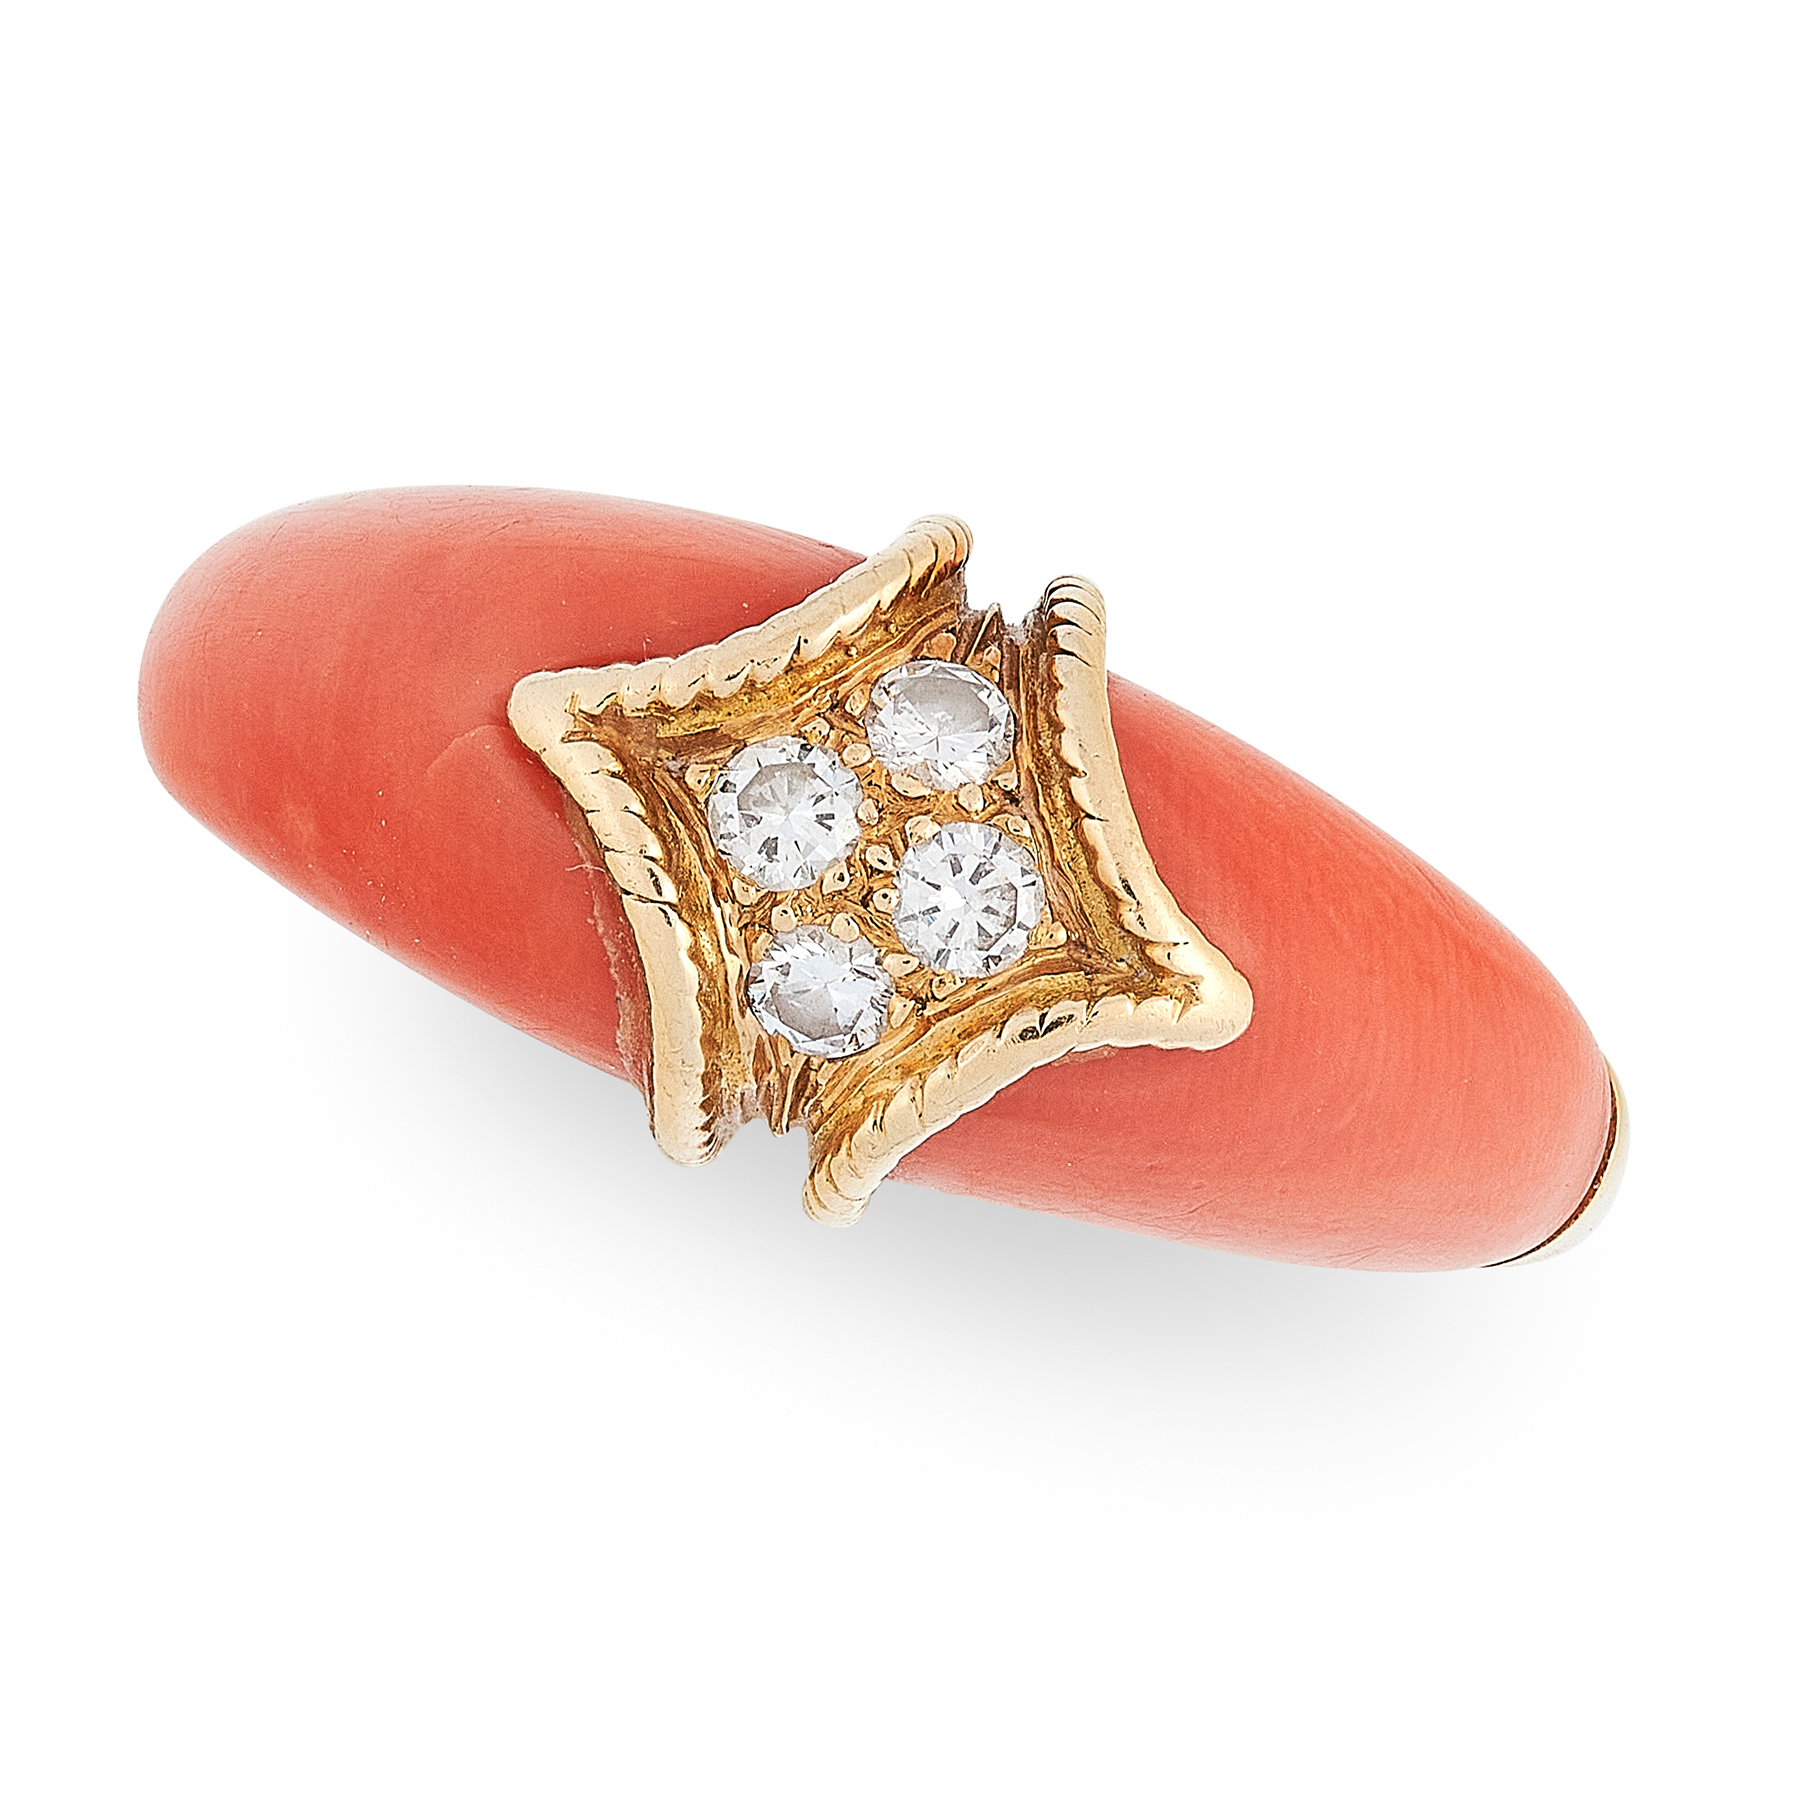 A VINTAGE CORAL AND DIAMOND RING in 18ct yellow gold, the band set with four round cut diamonds